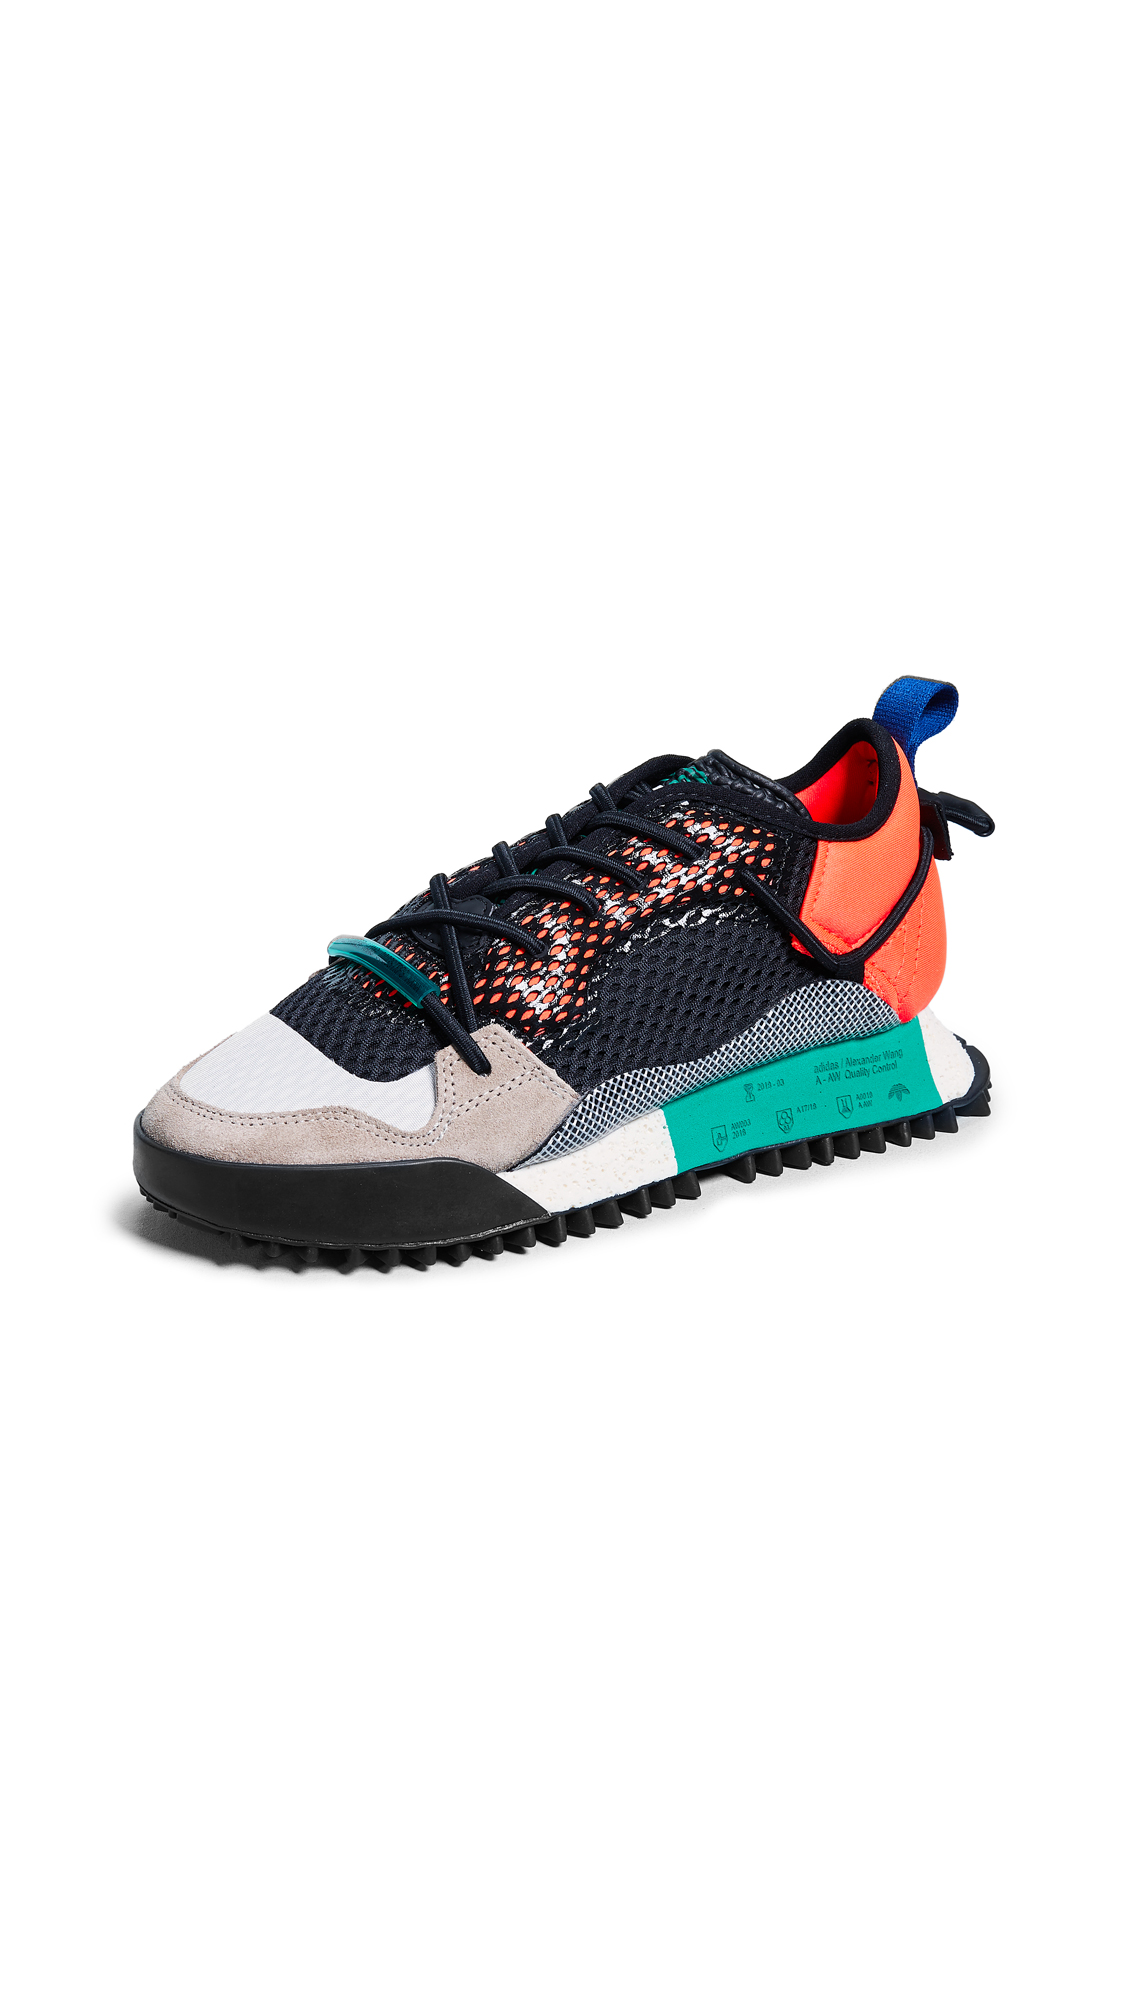 adidas Originals by Alexander Wang AW Reissue Run Sneakers - Red/Black/Green